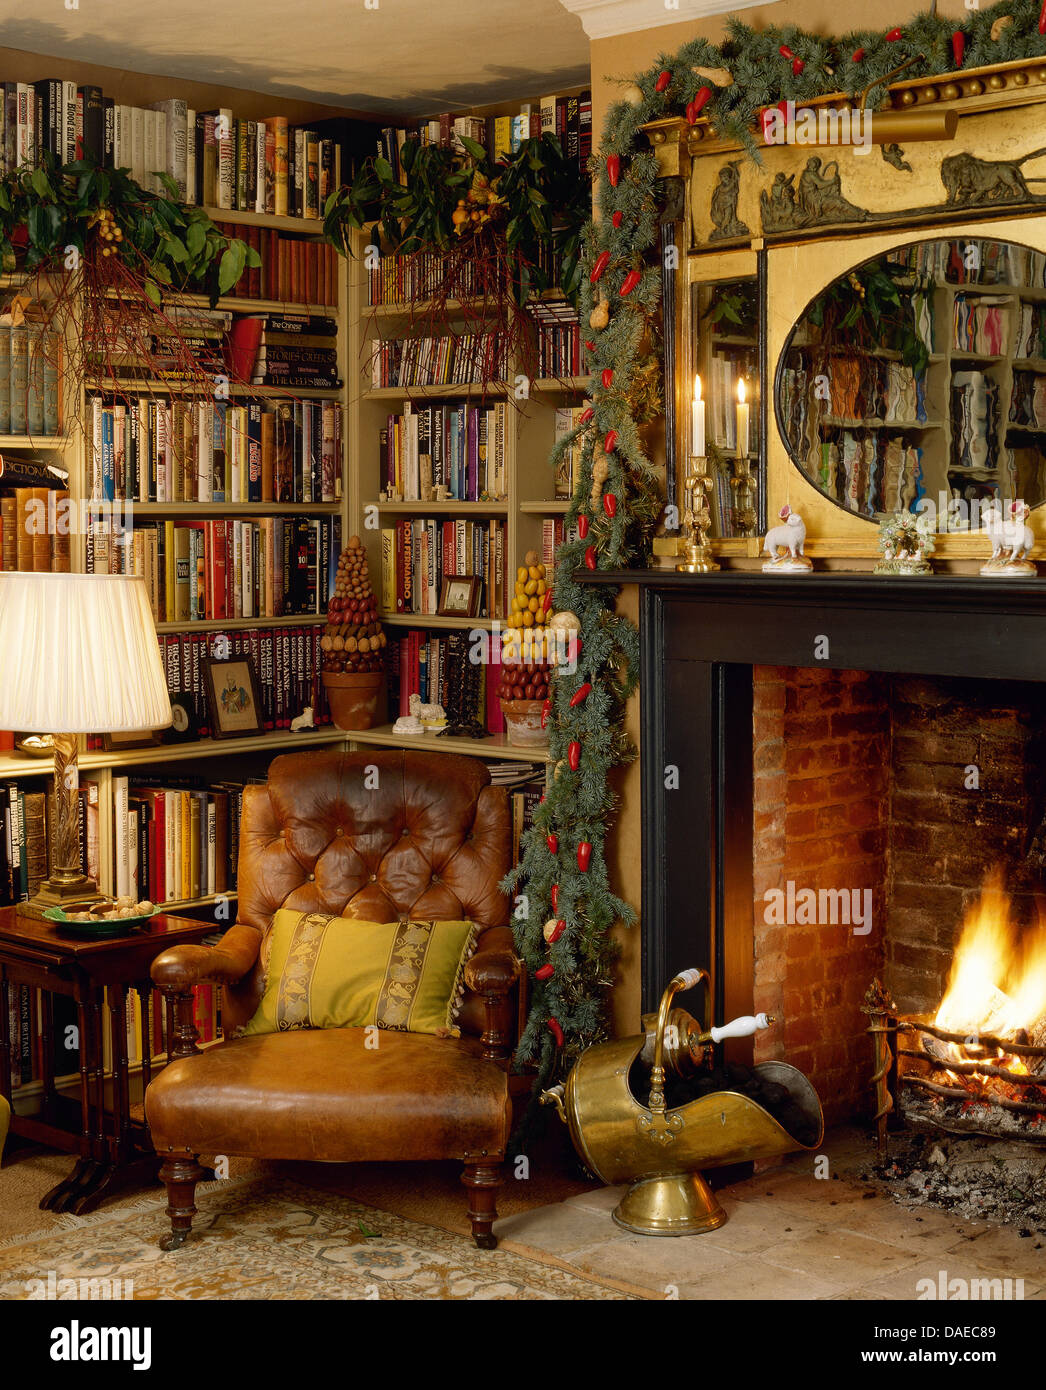 Leather Armchair In Front Of Bookshelves And Beside